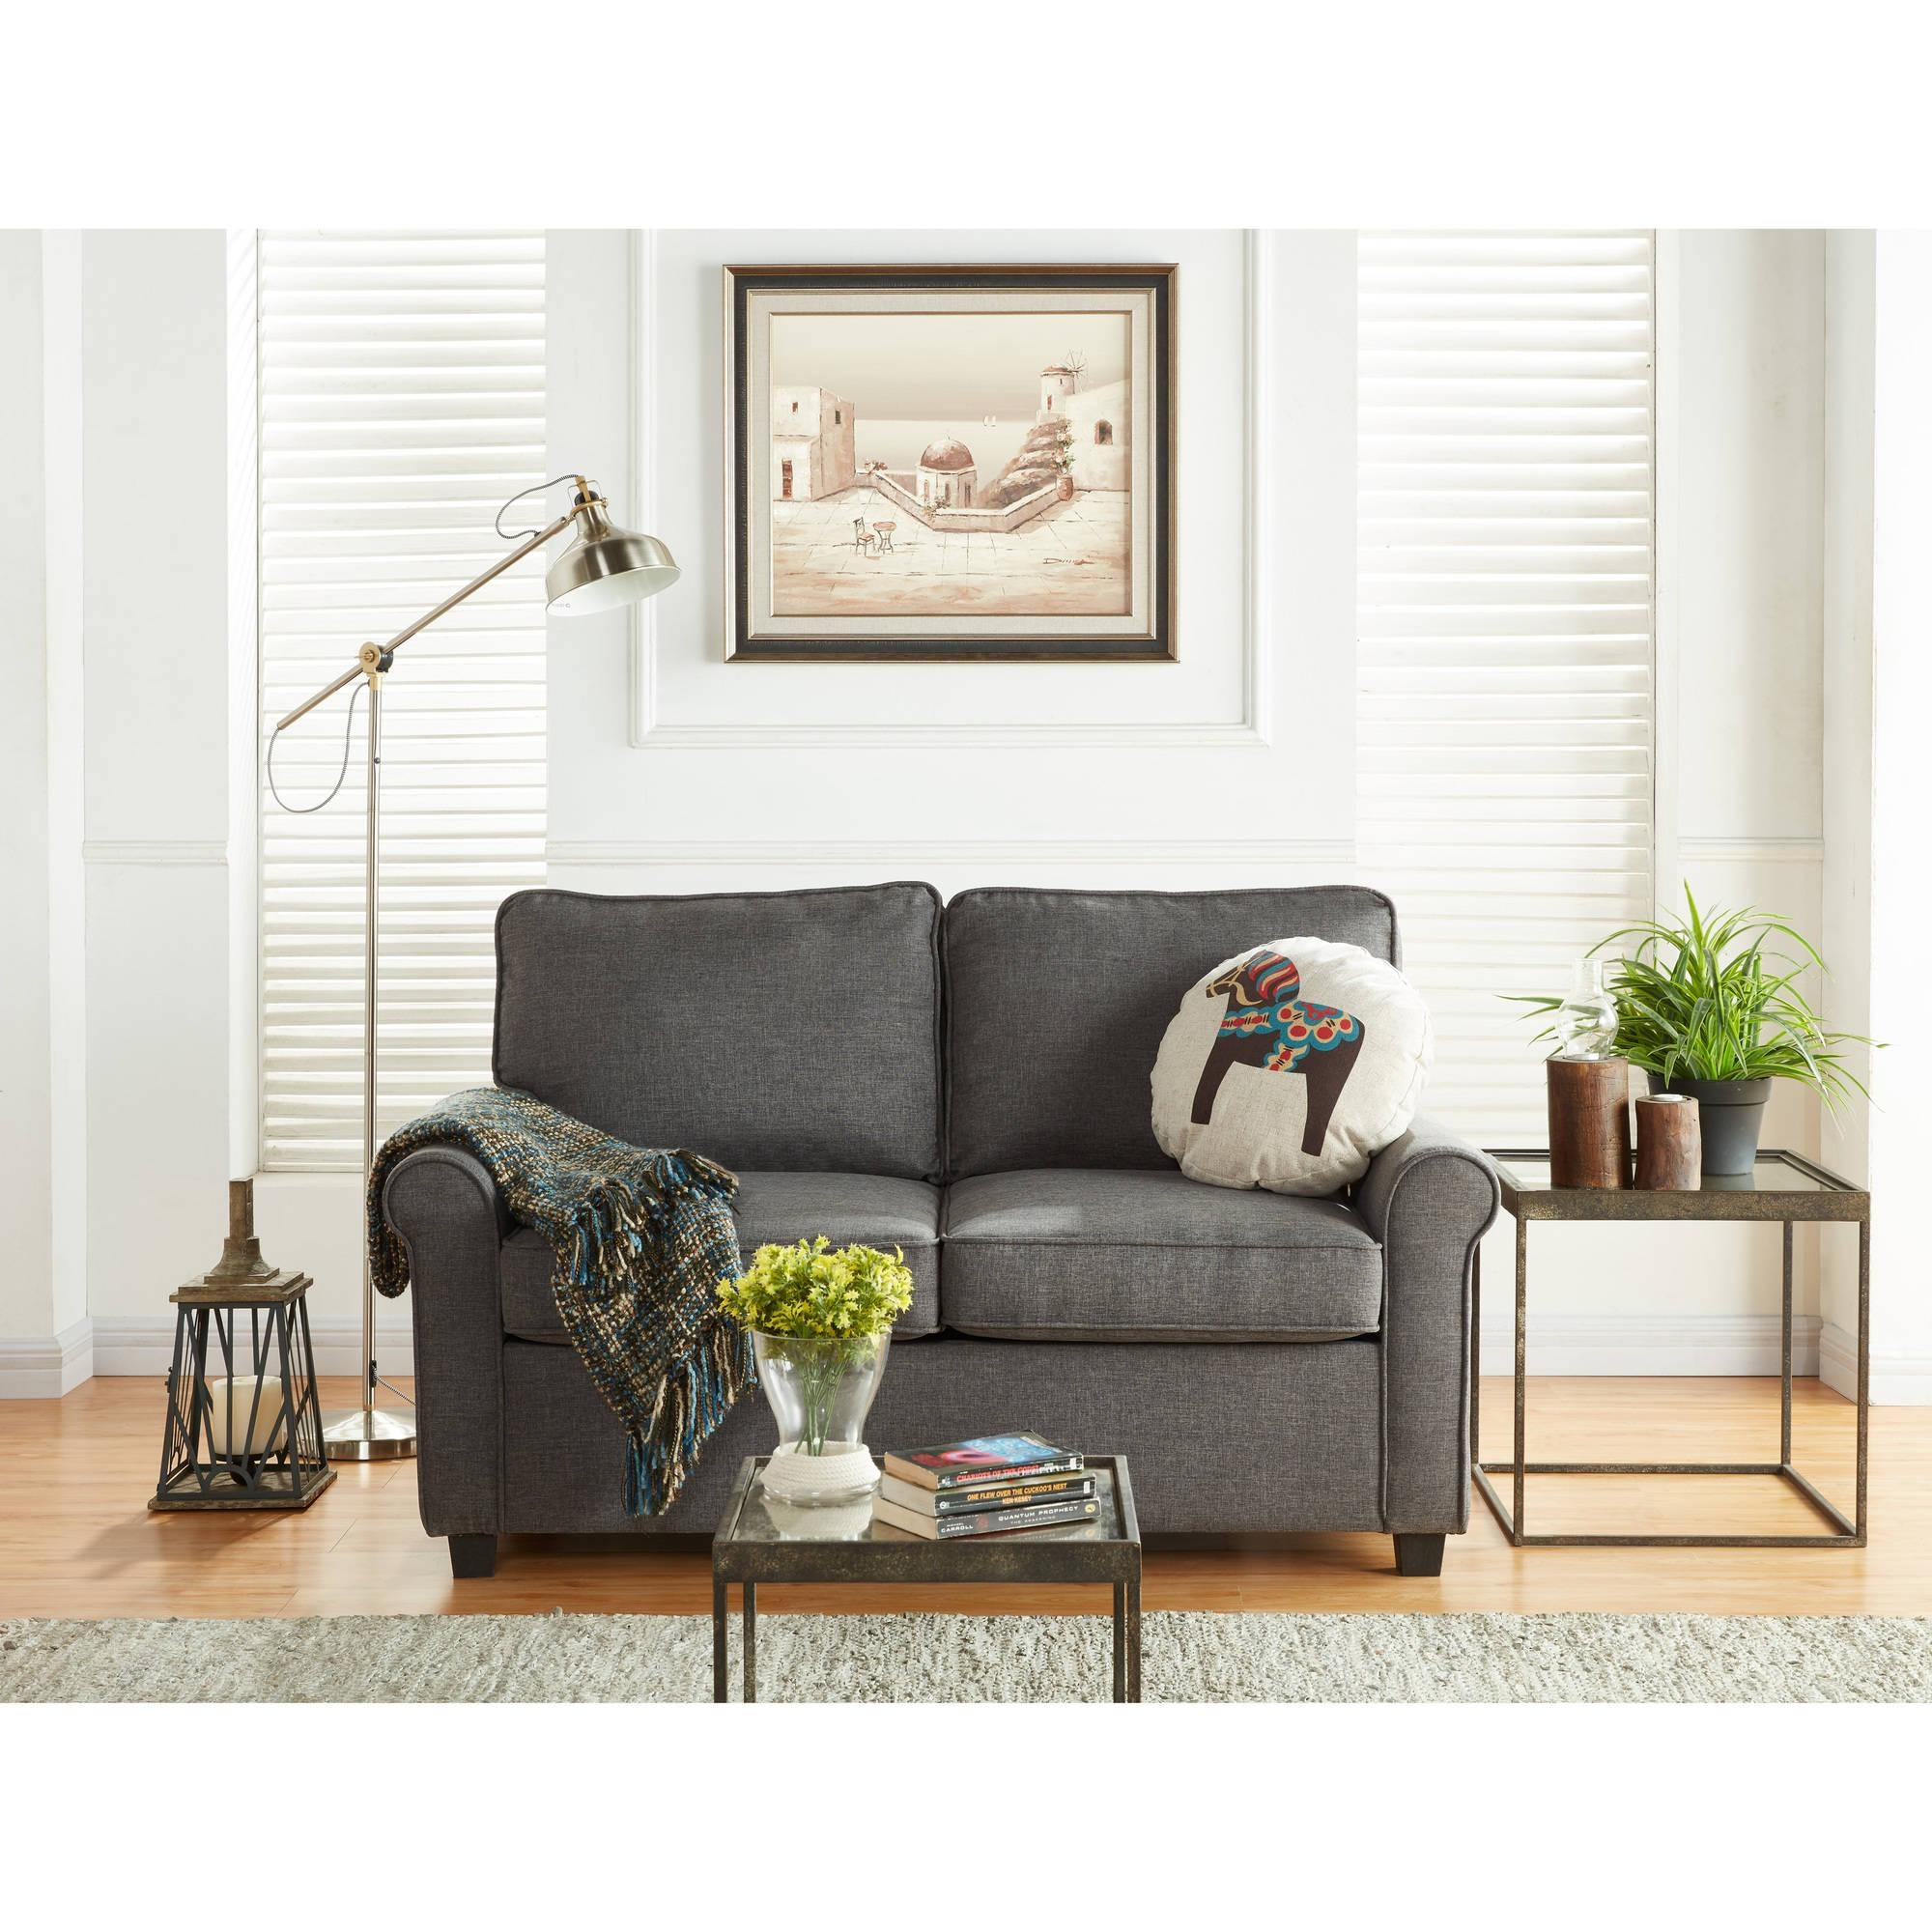 Mainstays Sofa Sleeper With Memory Foam Mattress, Grey – Walmart Regarding Mainstays Sleeper Sofas (View 9 of 20)